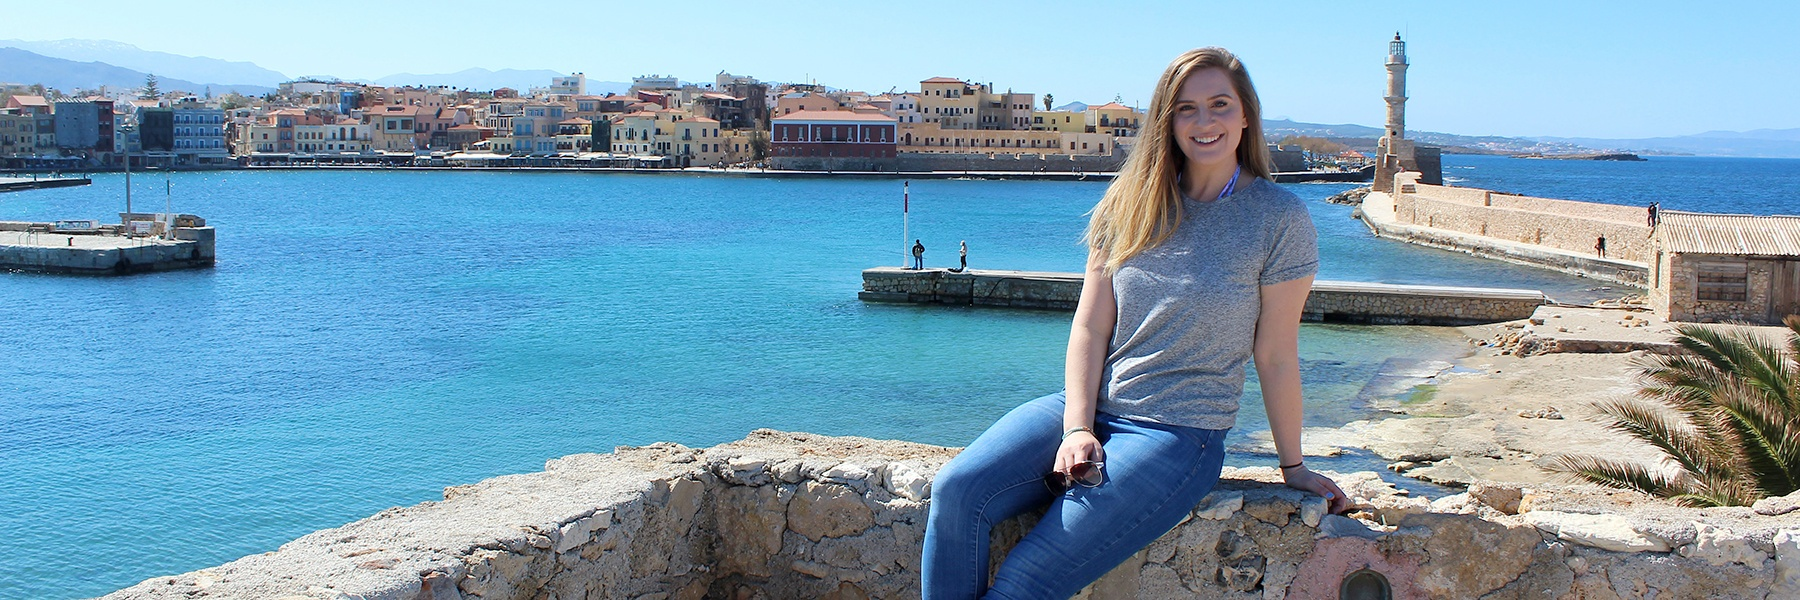 female student sitting on a wall in front of a body of water overseas